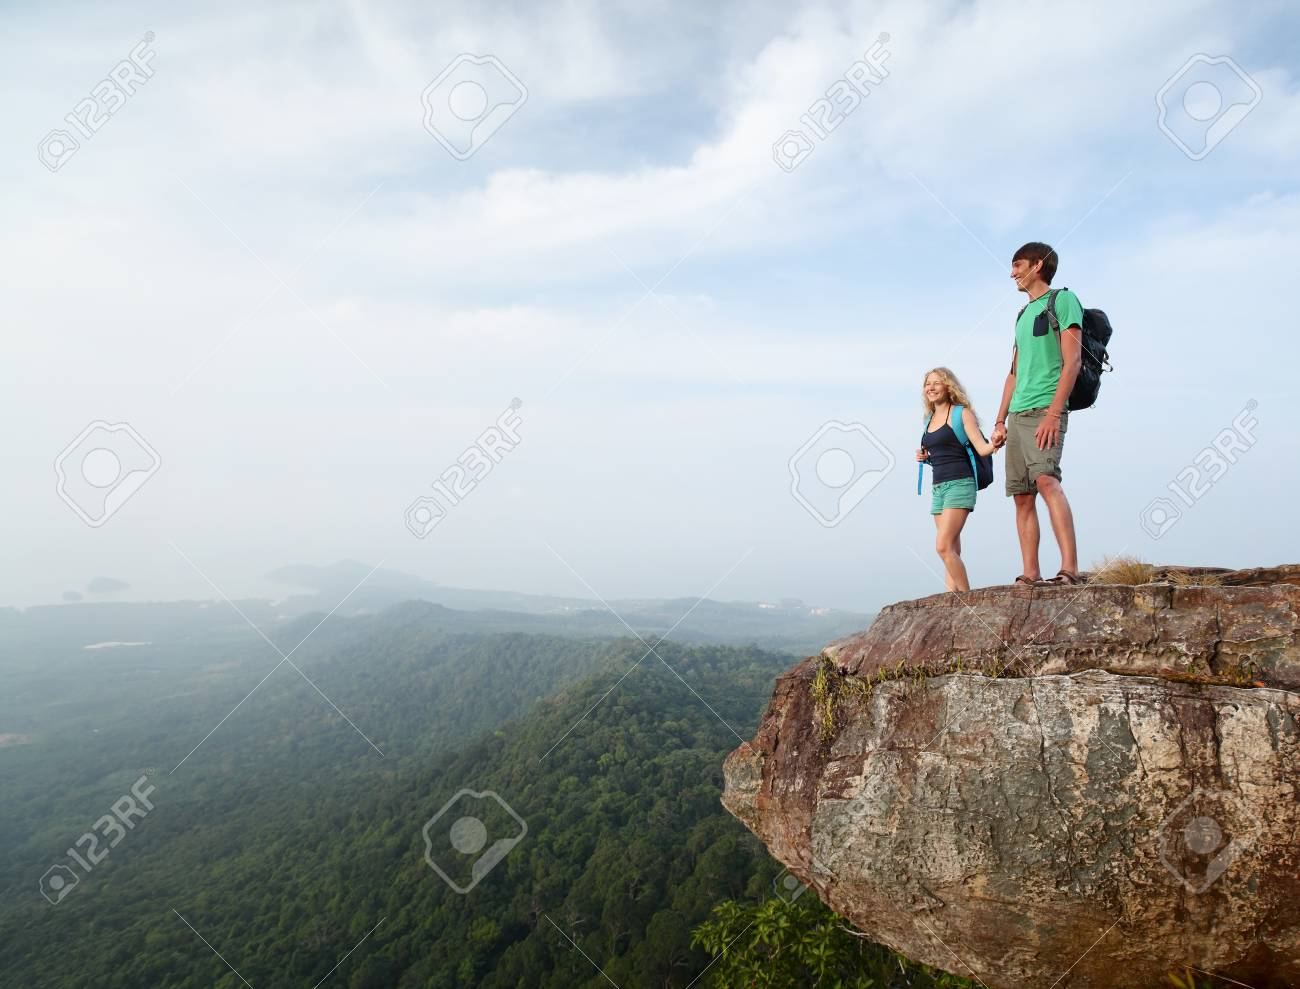 Two hikers standing on top of a mountain and enjoying valley view Stock Photo - 19872754